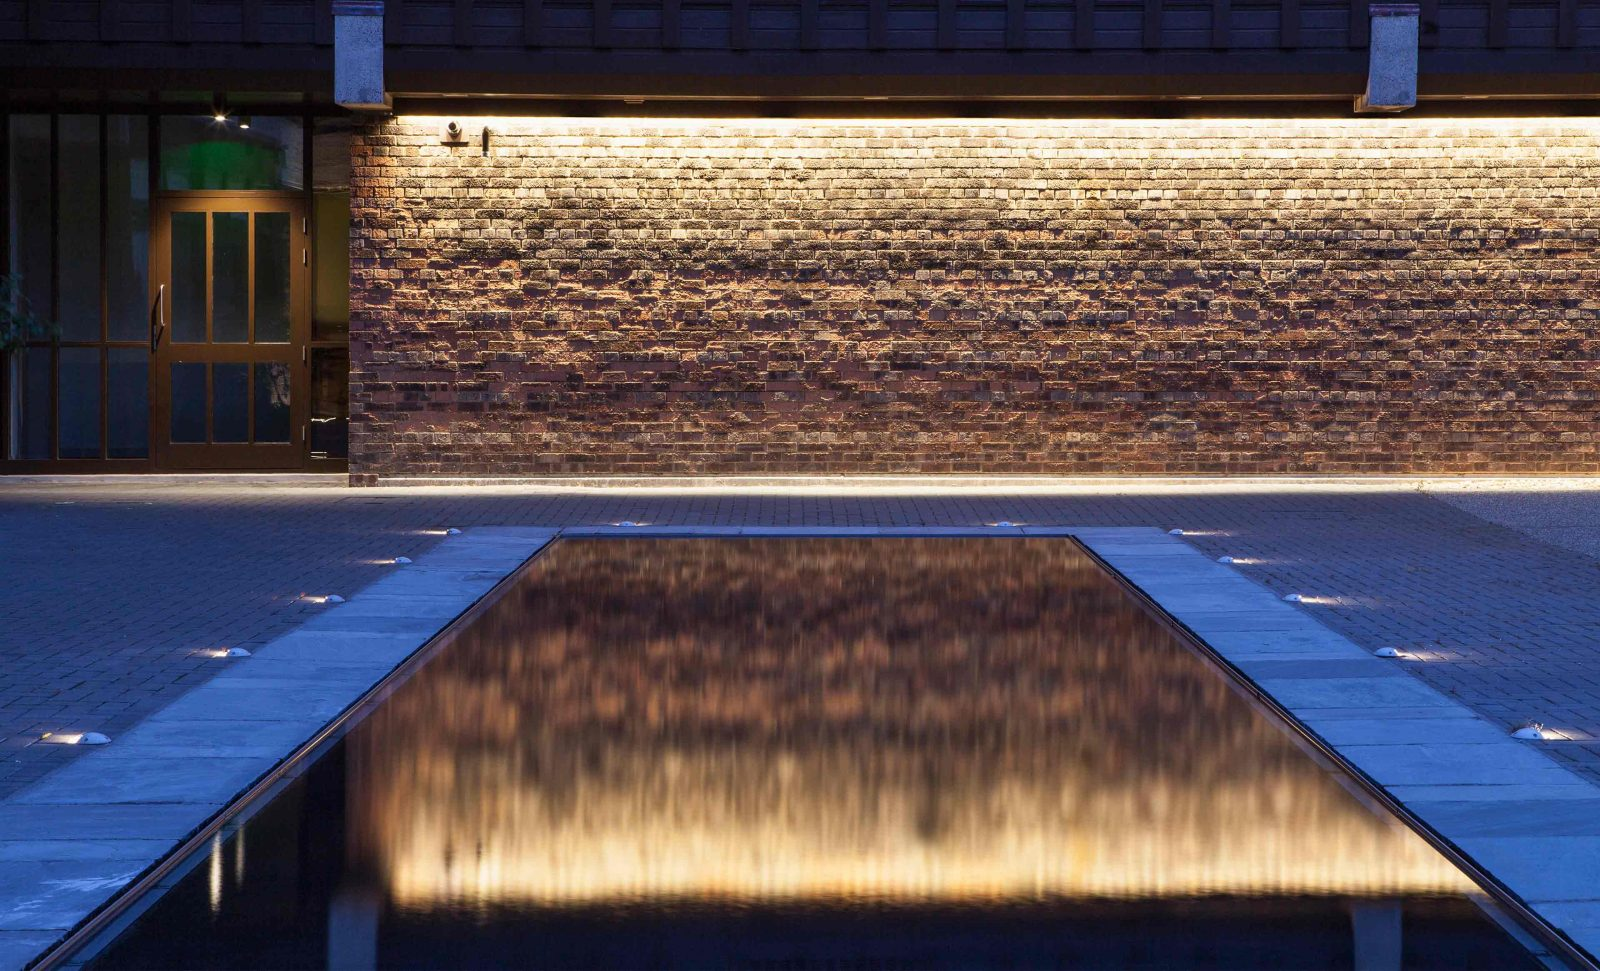 Exterior Lighting Design Residential Grounds Illuminated Brickwork Wall Pool Studio N